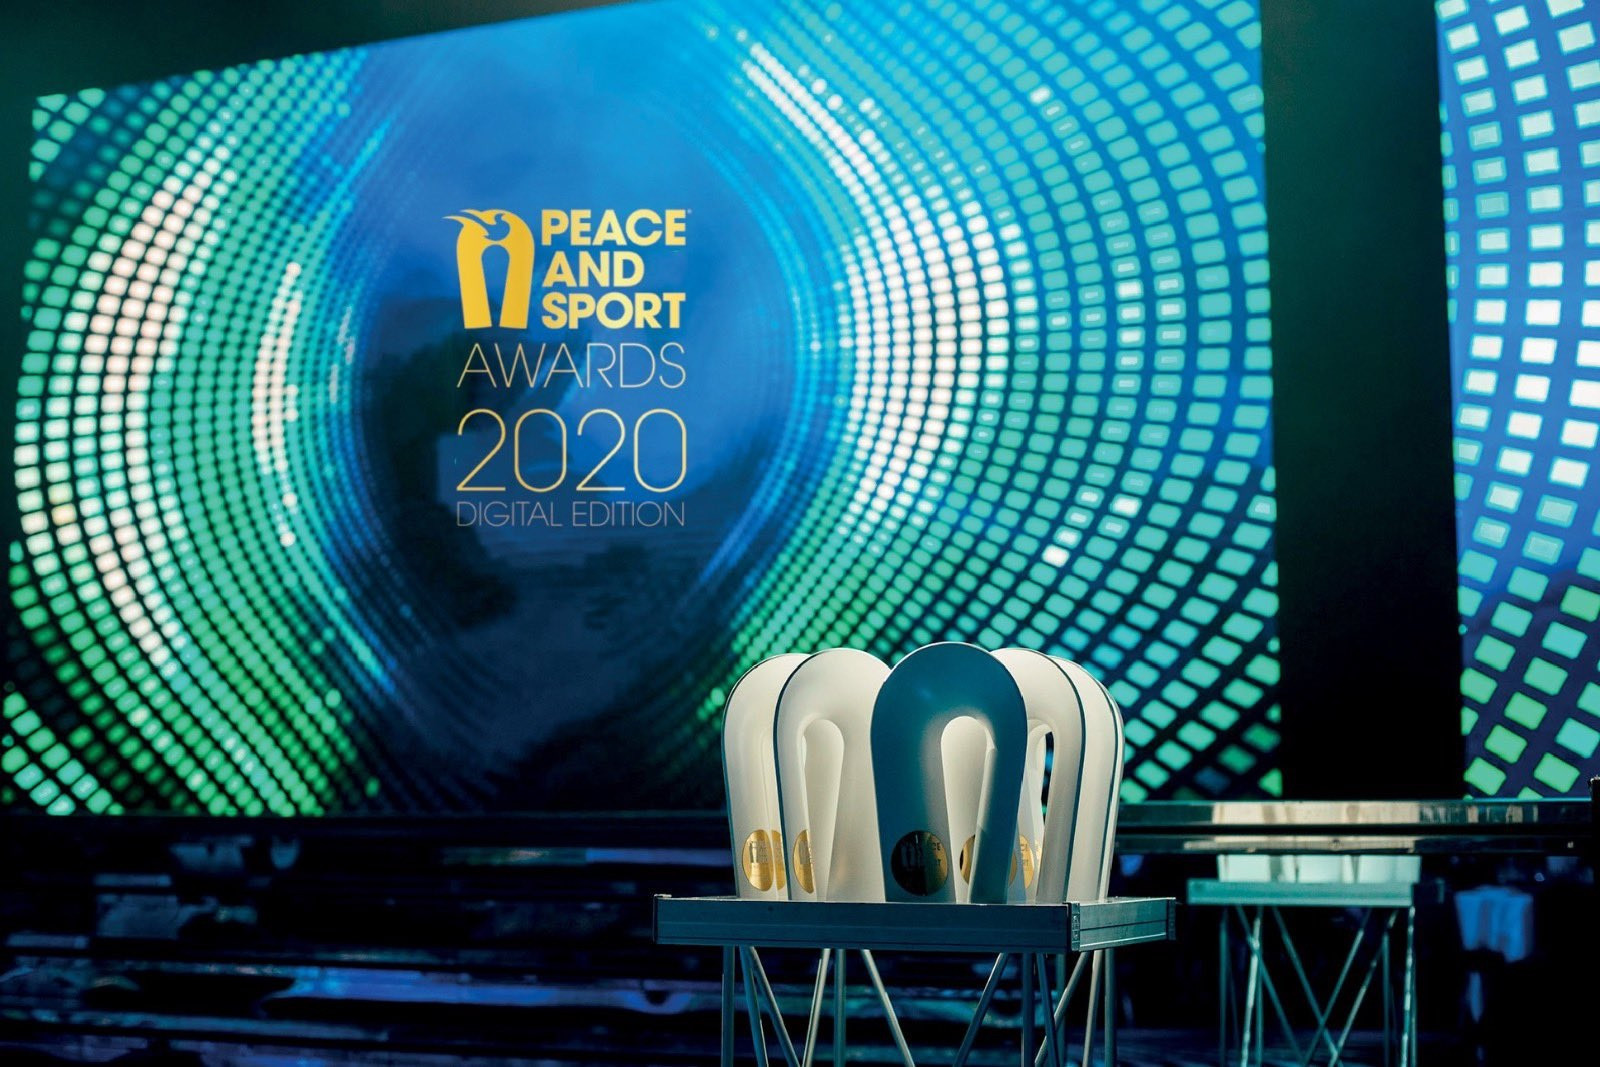 FIAS Online Sambo Cup in running for prize at 2020 Peace and Sport Awards